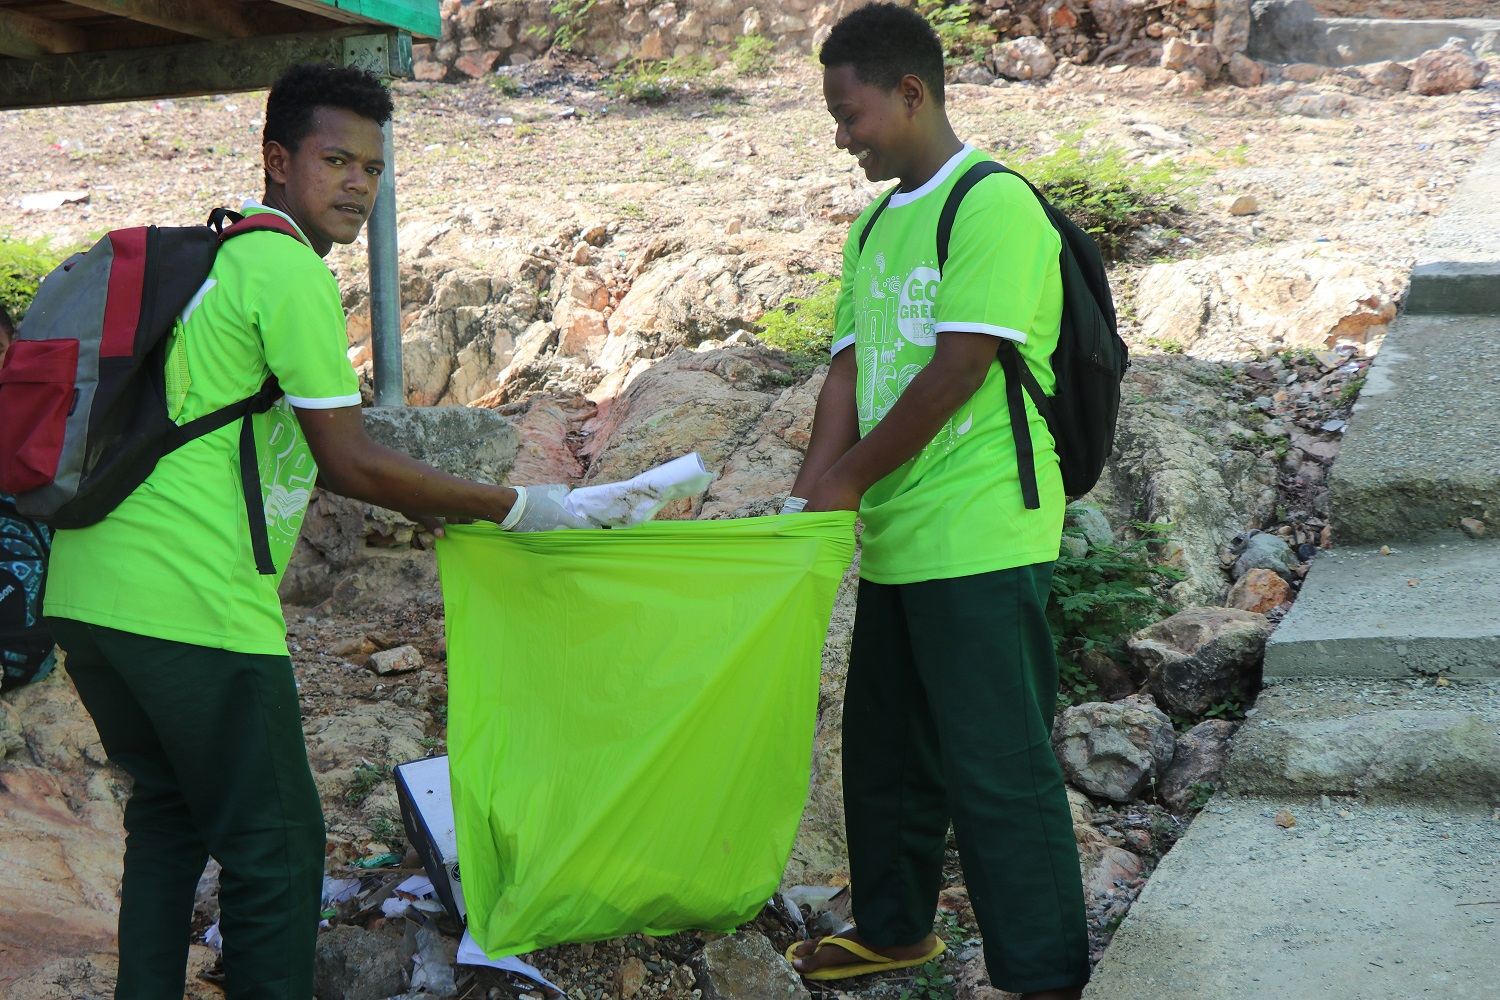 Tanata Primary School students cleaning up